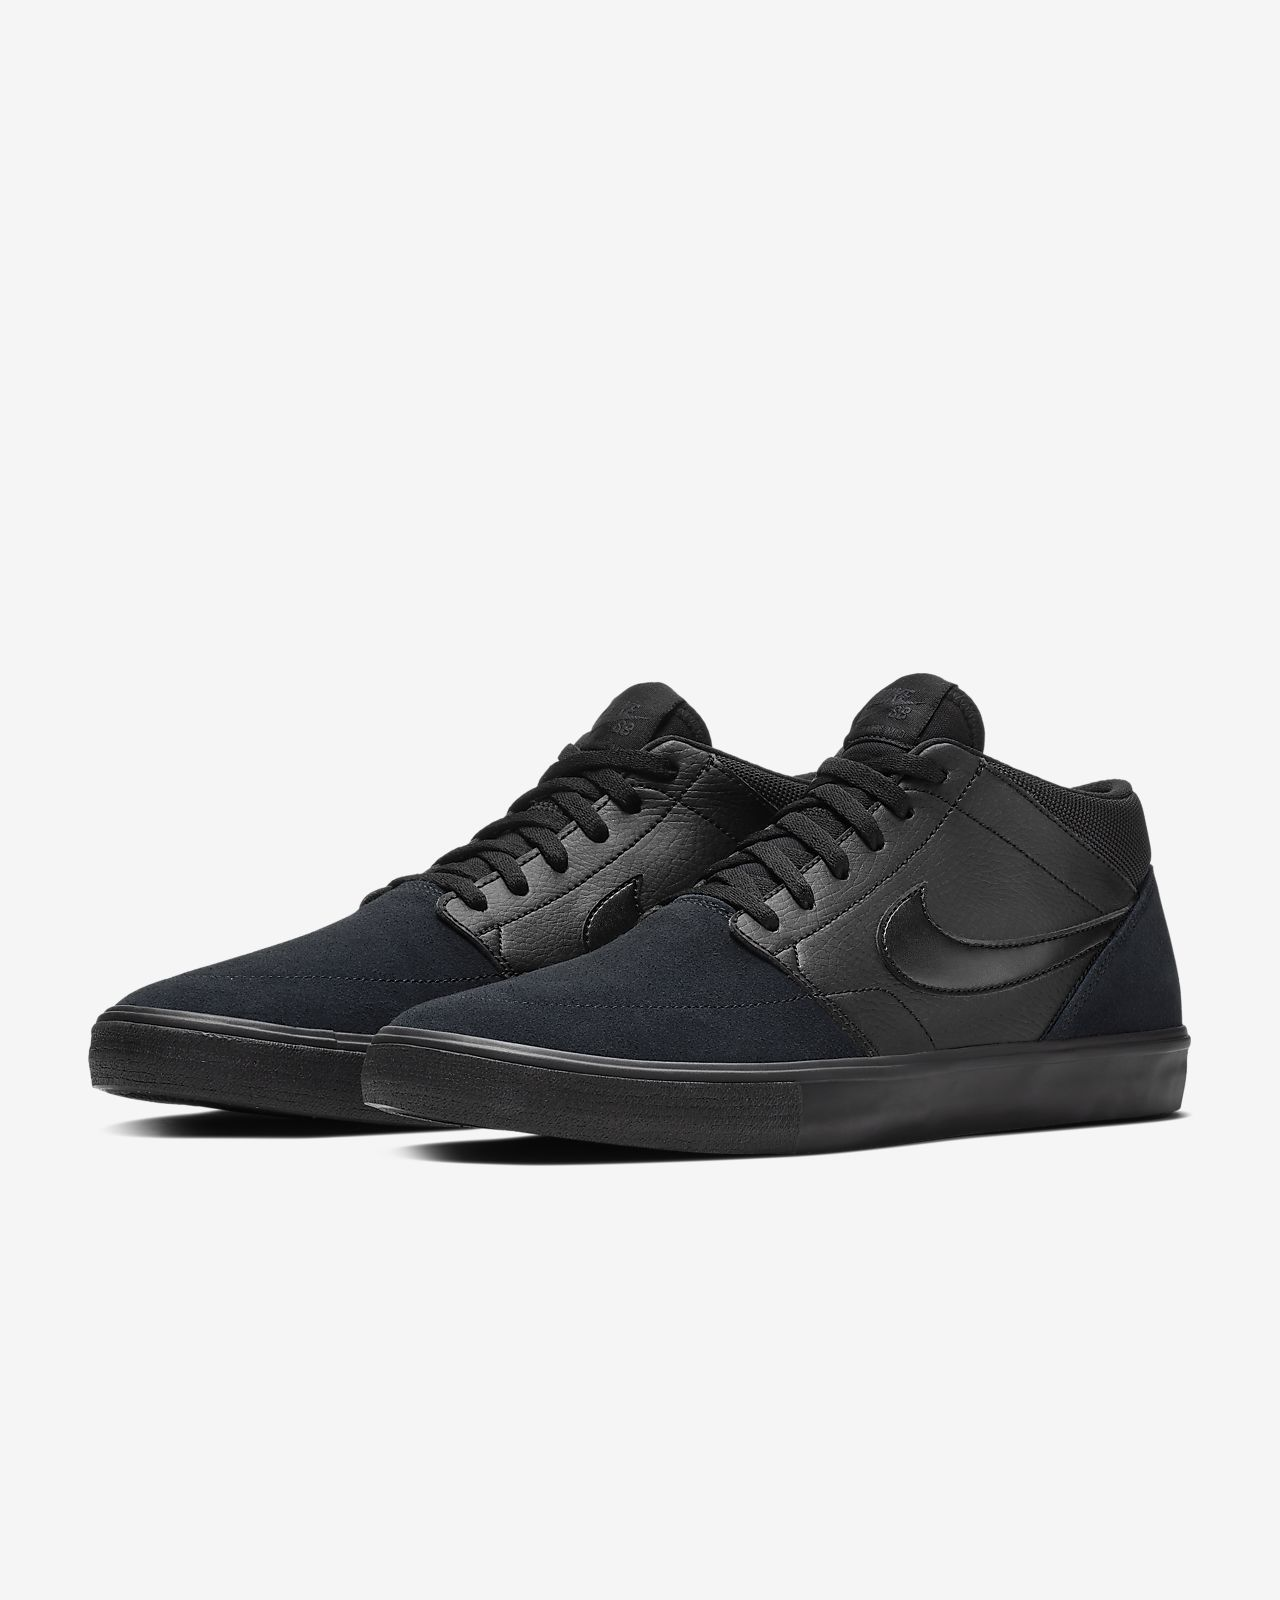 reputable site 030a8 8f969 ... Nike SB Solarsoft Portmore II Mid Men s Skateboarding Shoe